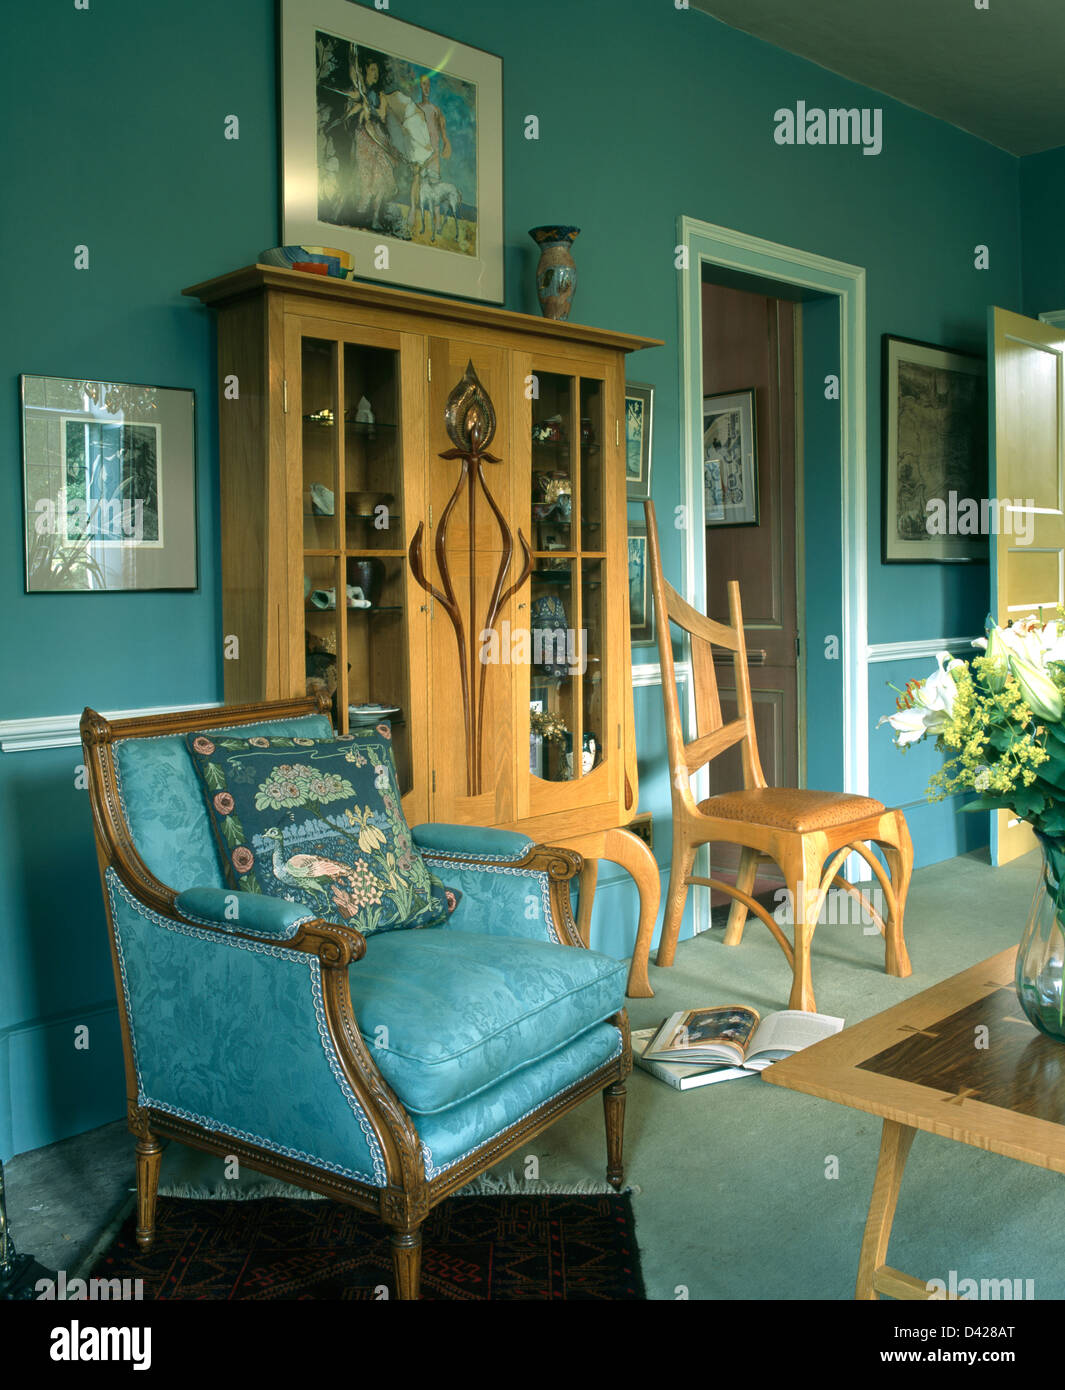 Turquoise Blue Damask Armchair And Pale Wood Glass Fronted Cabinet In  Turquoise Country Living Room